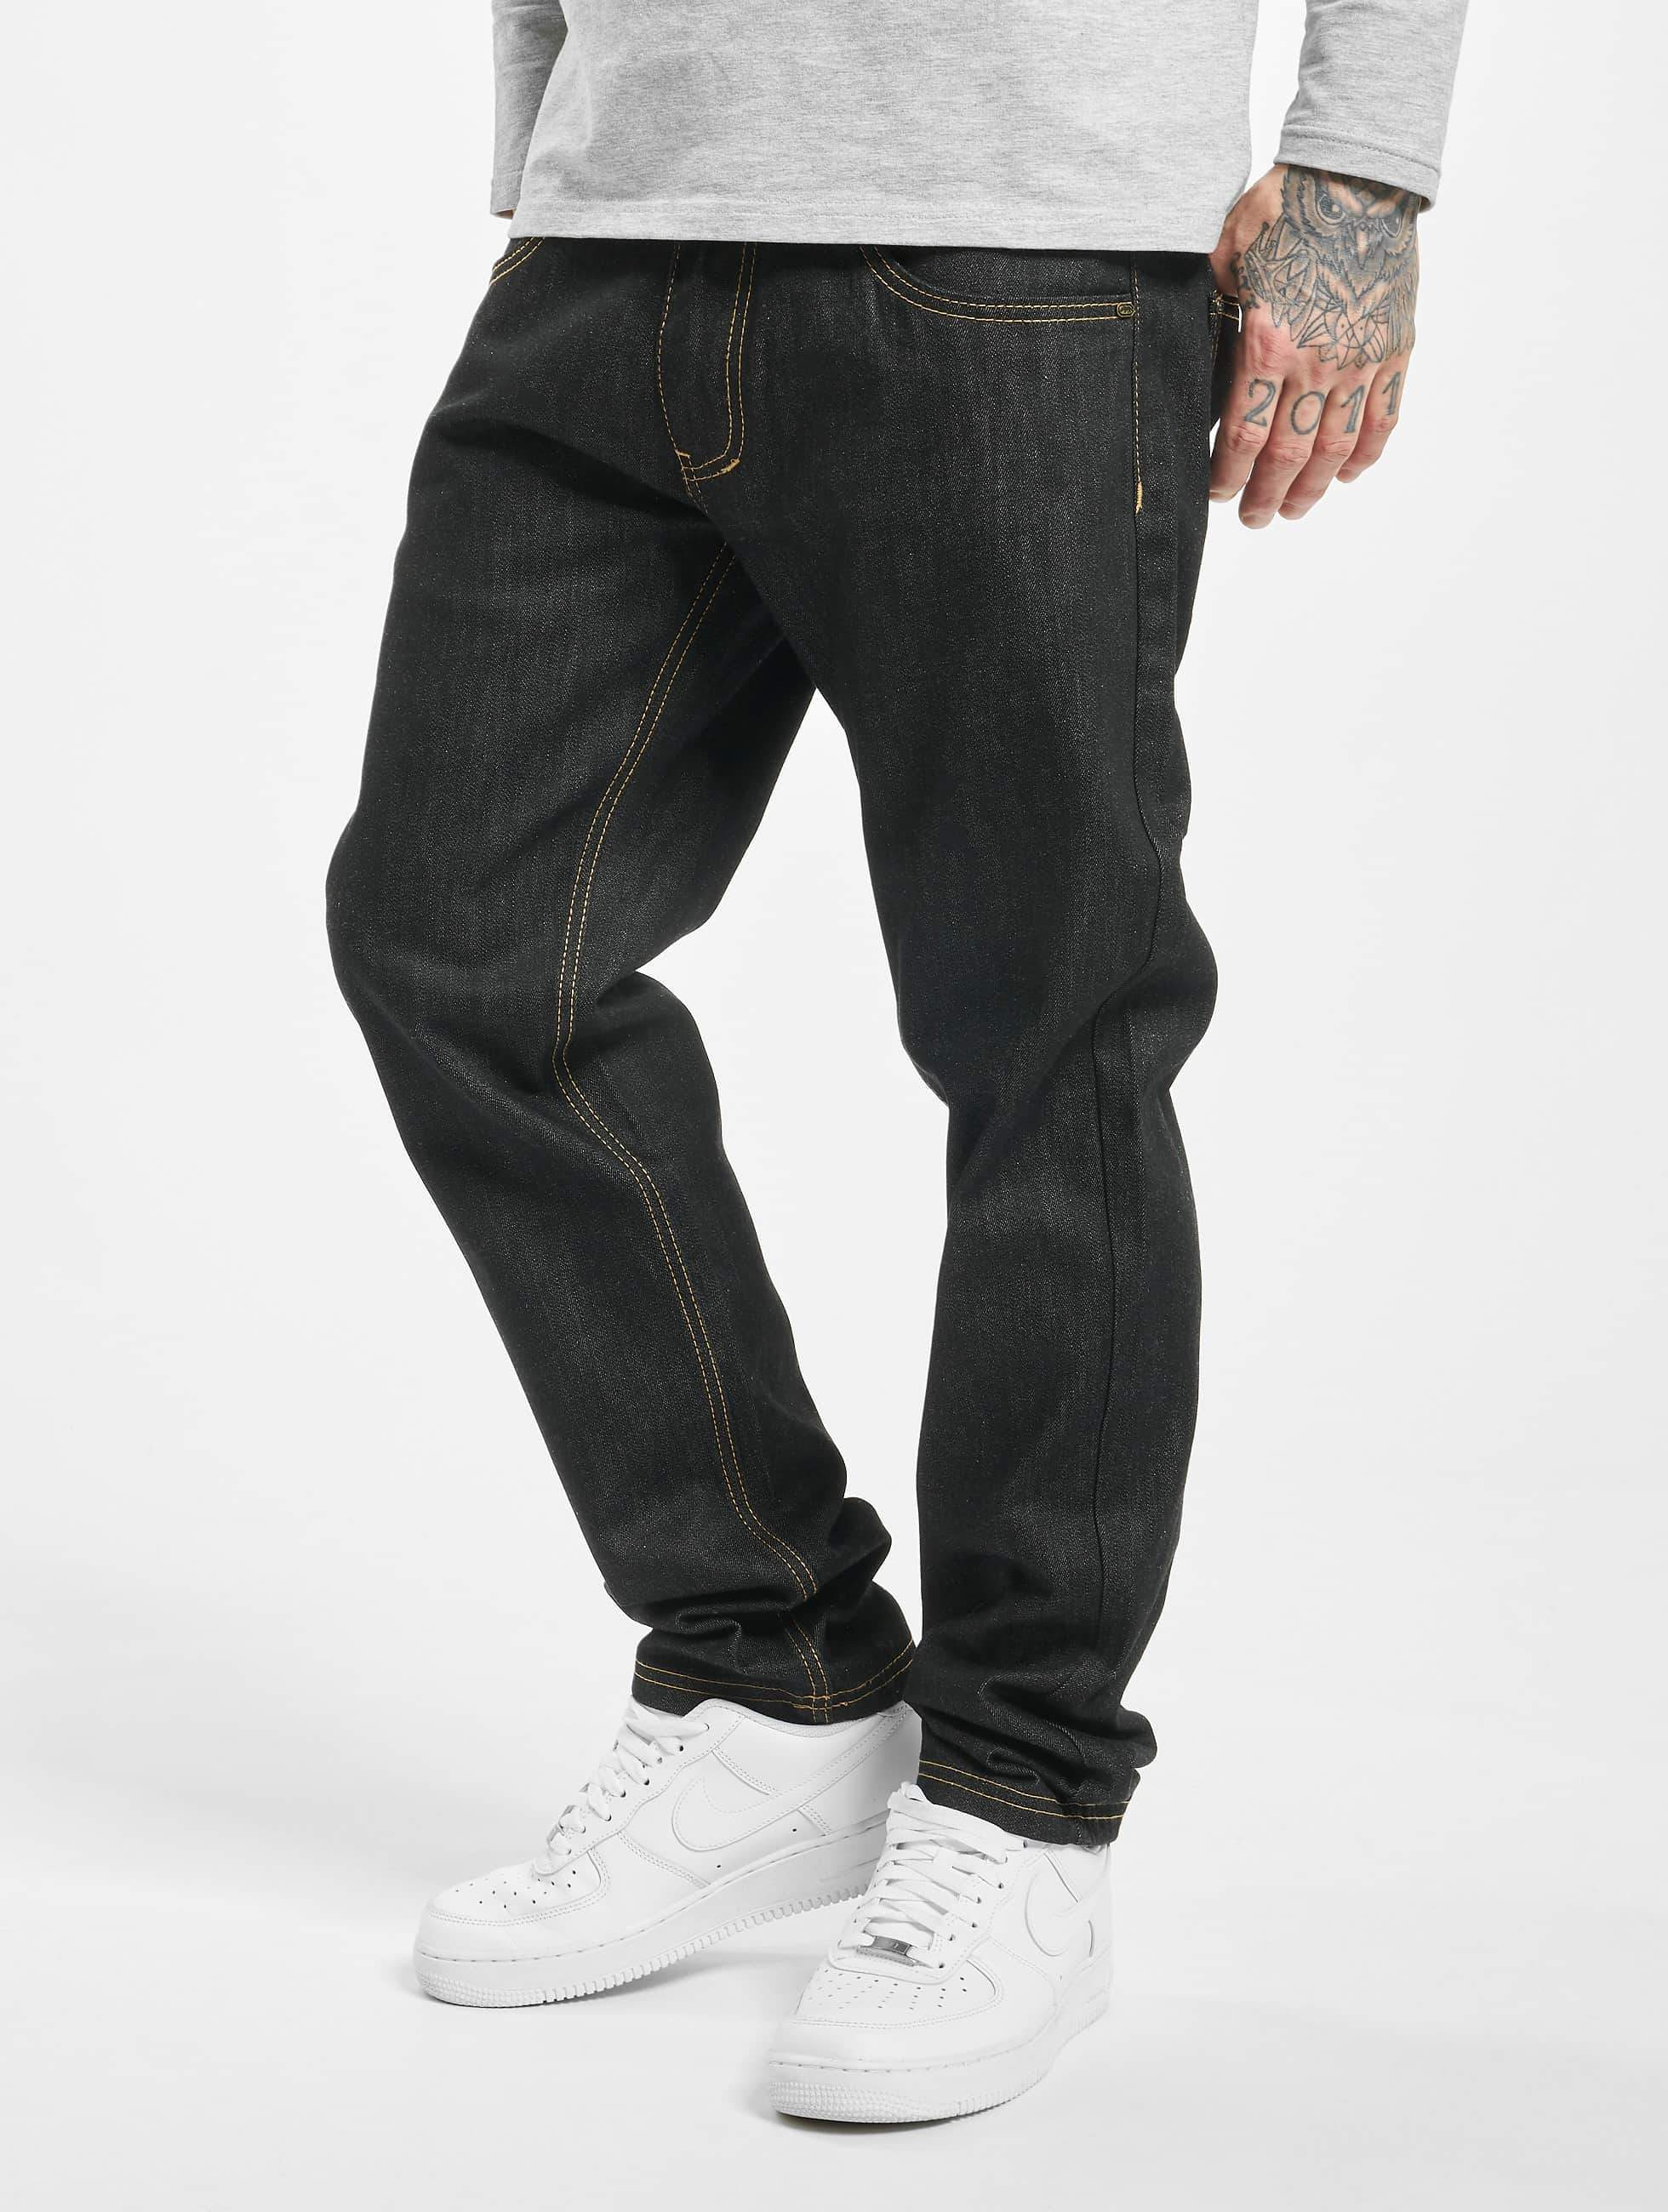 Ecko Unltd. / Straight Fit Jeans Bour Bonstreet in black W 40 L 34